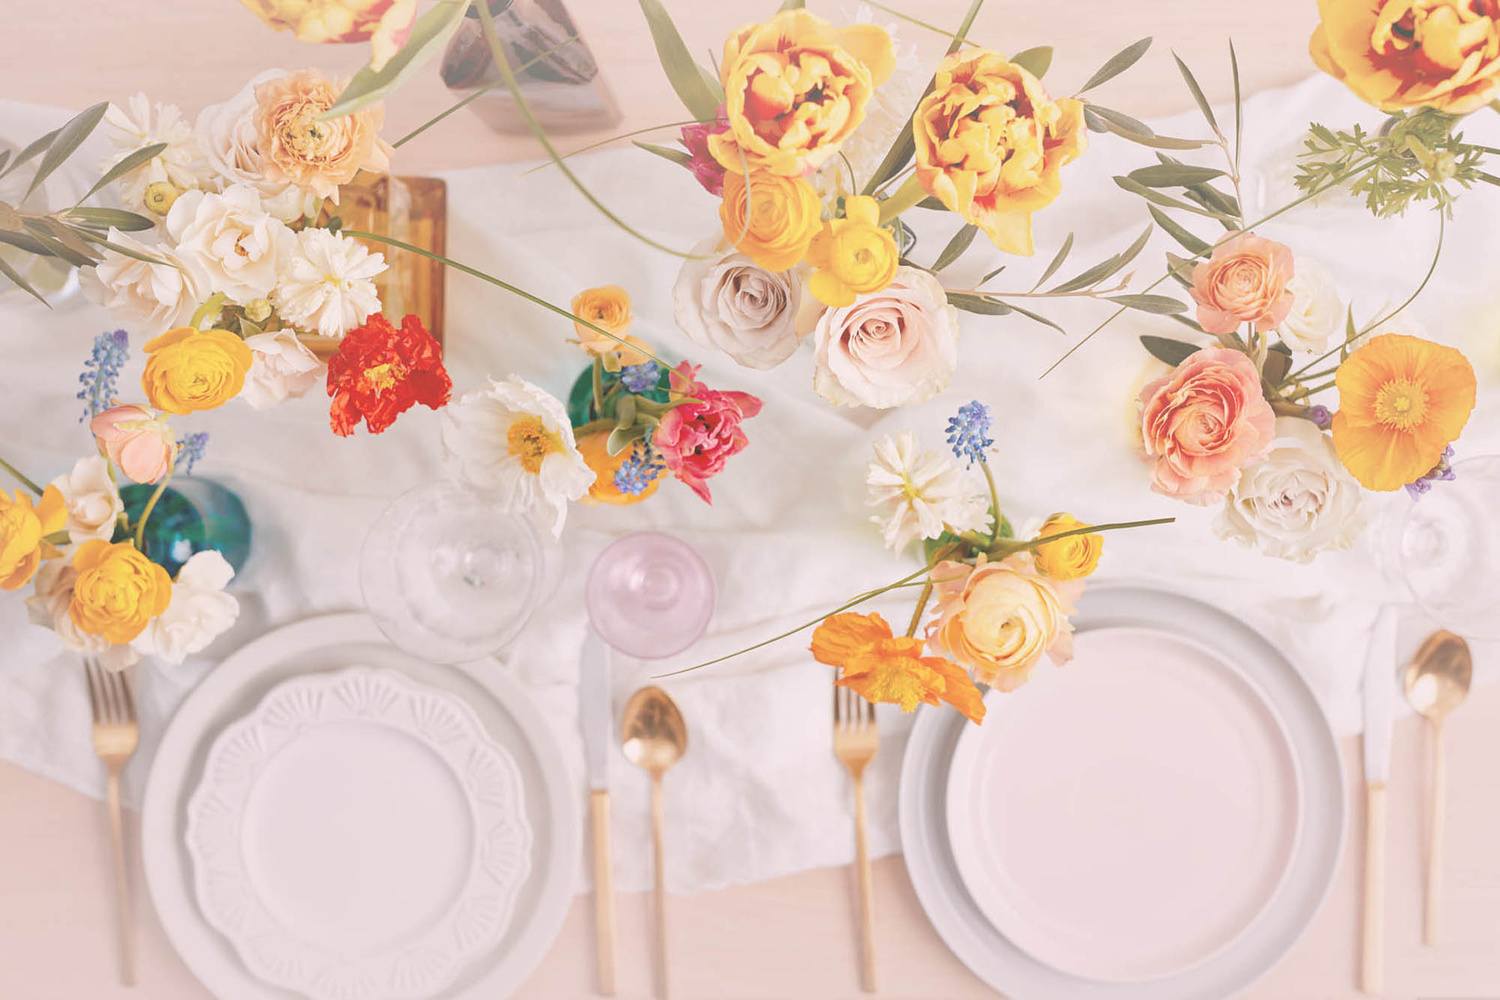 Flowers at a dinner table by OMS Photo